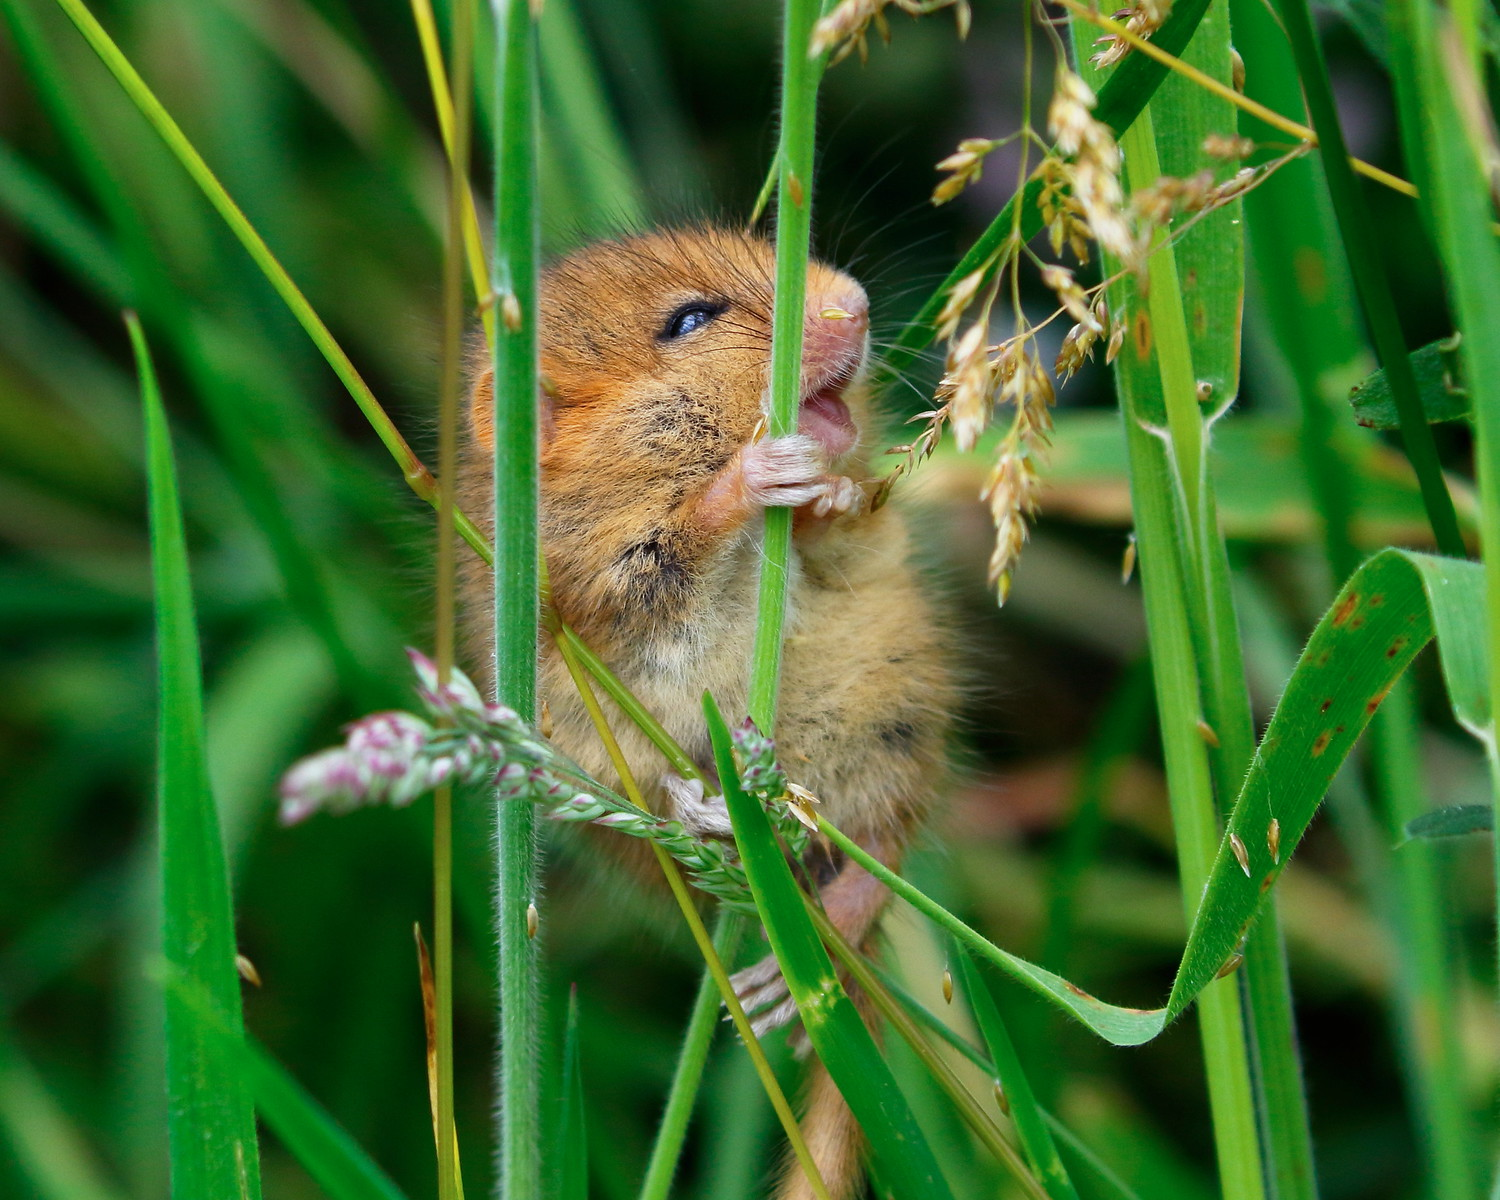 Dormice are now being officially monitored at East Devon's nature reserves. Photo by Jo King